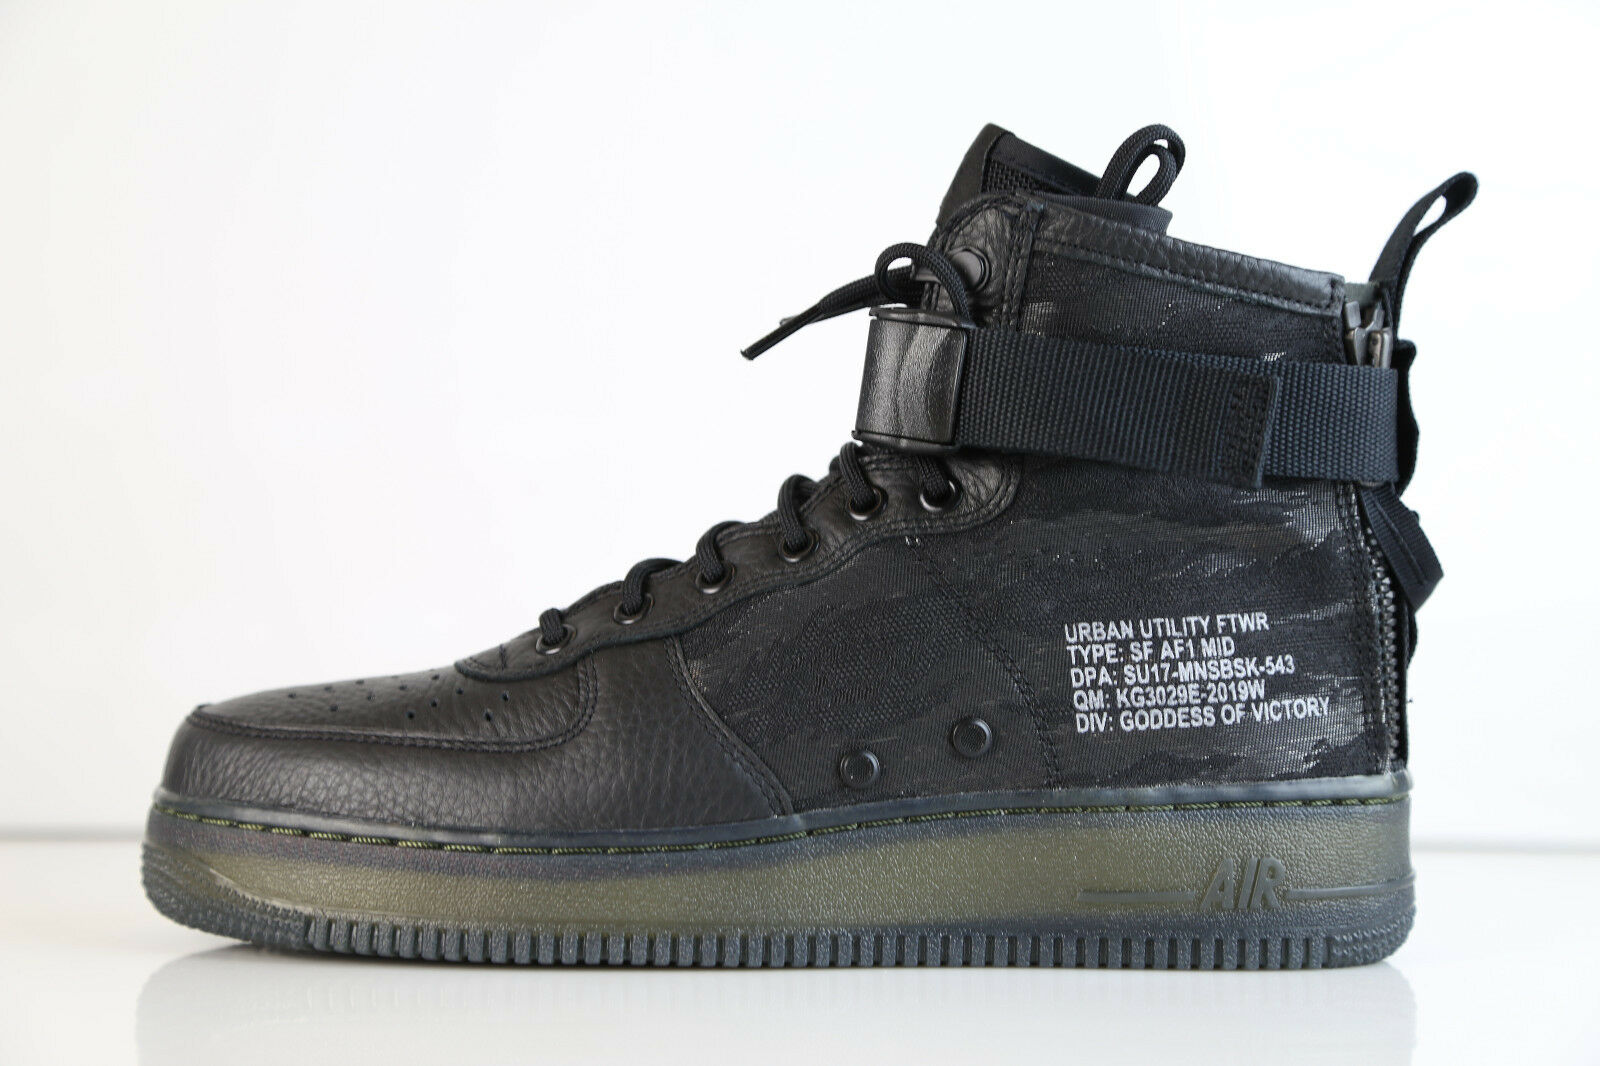 Nike Air Tiger Force 1 SF AF1 Mid Urban utilidad Negro Tiger Air Camo QS aa7345-001 8 13 3 Wild Casual Shoes 5f810a